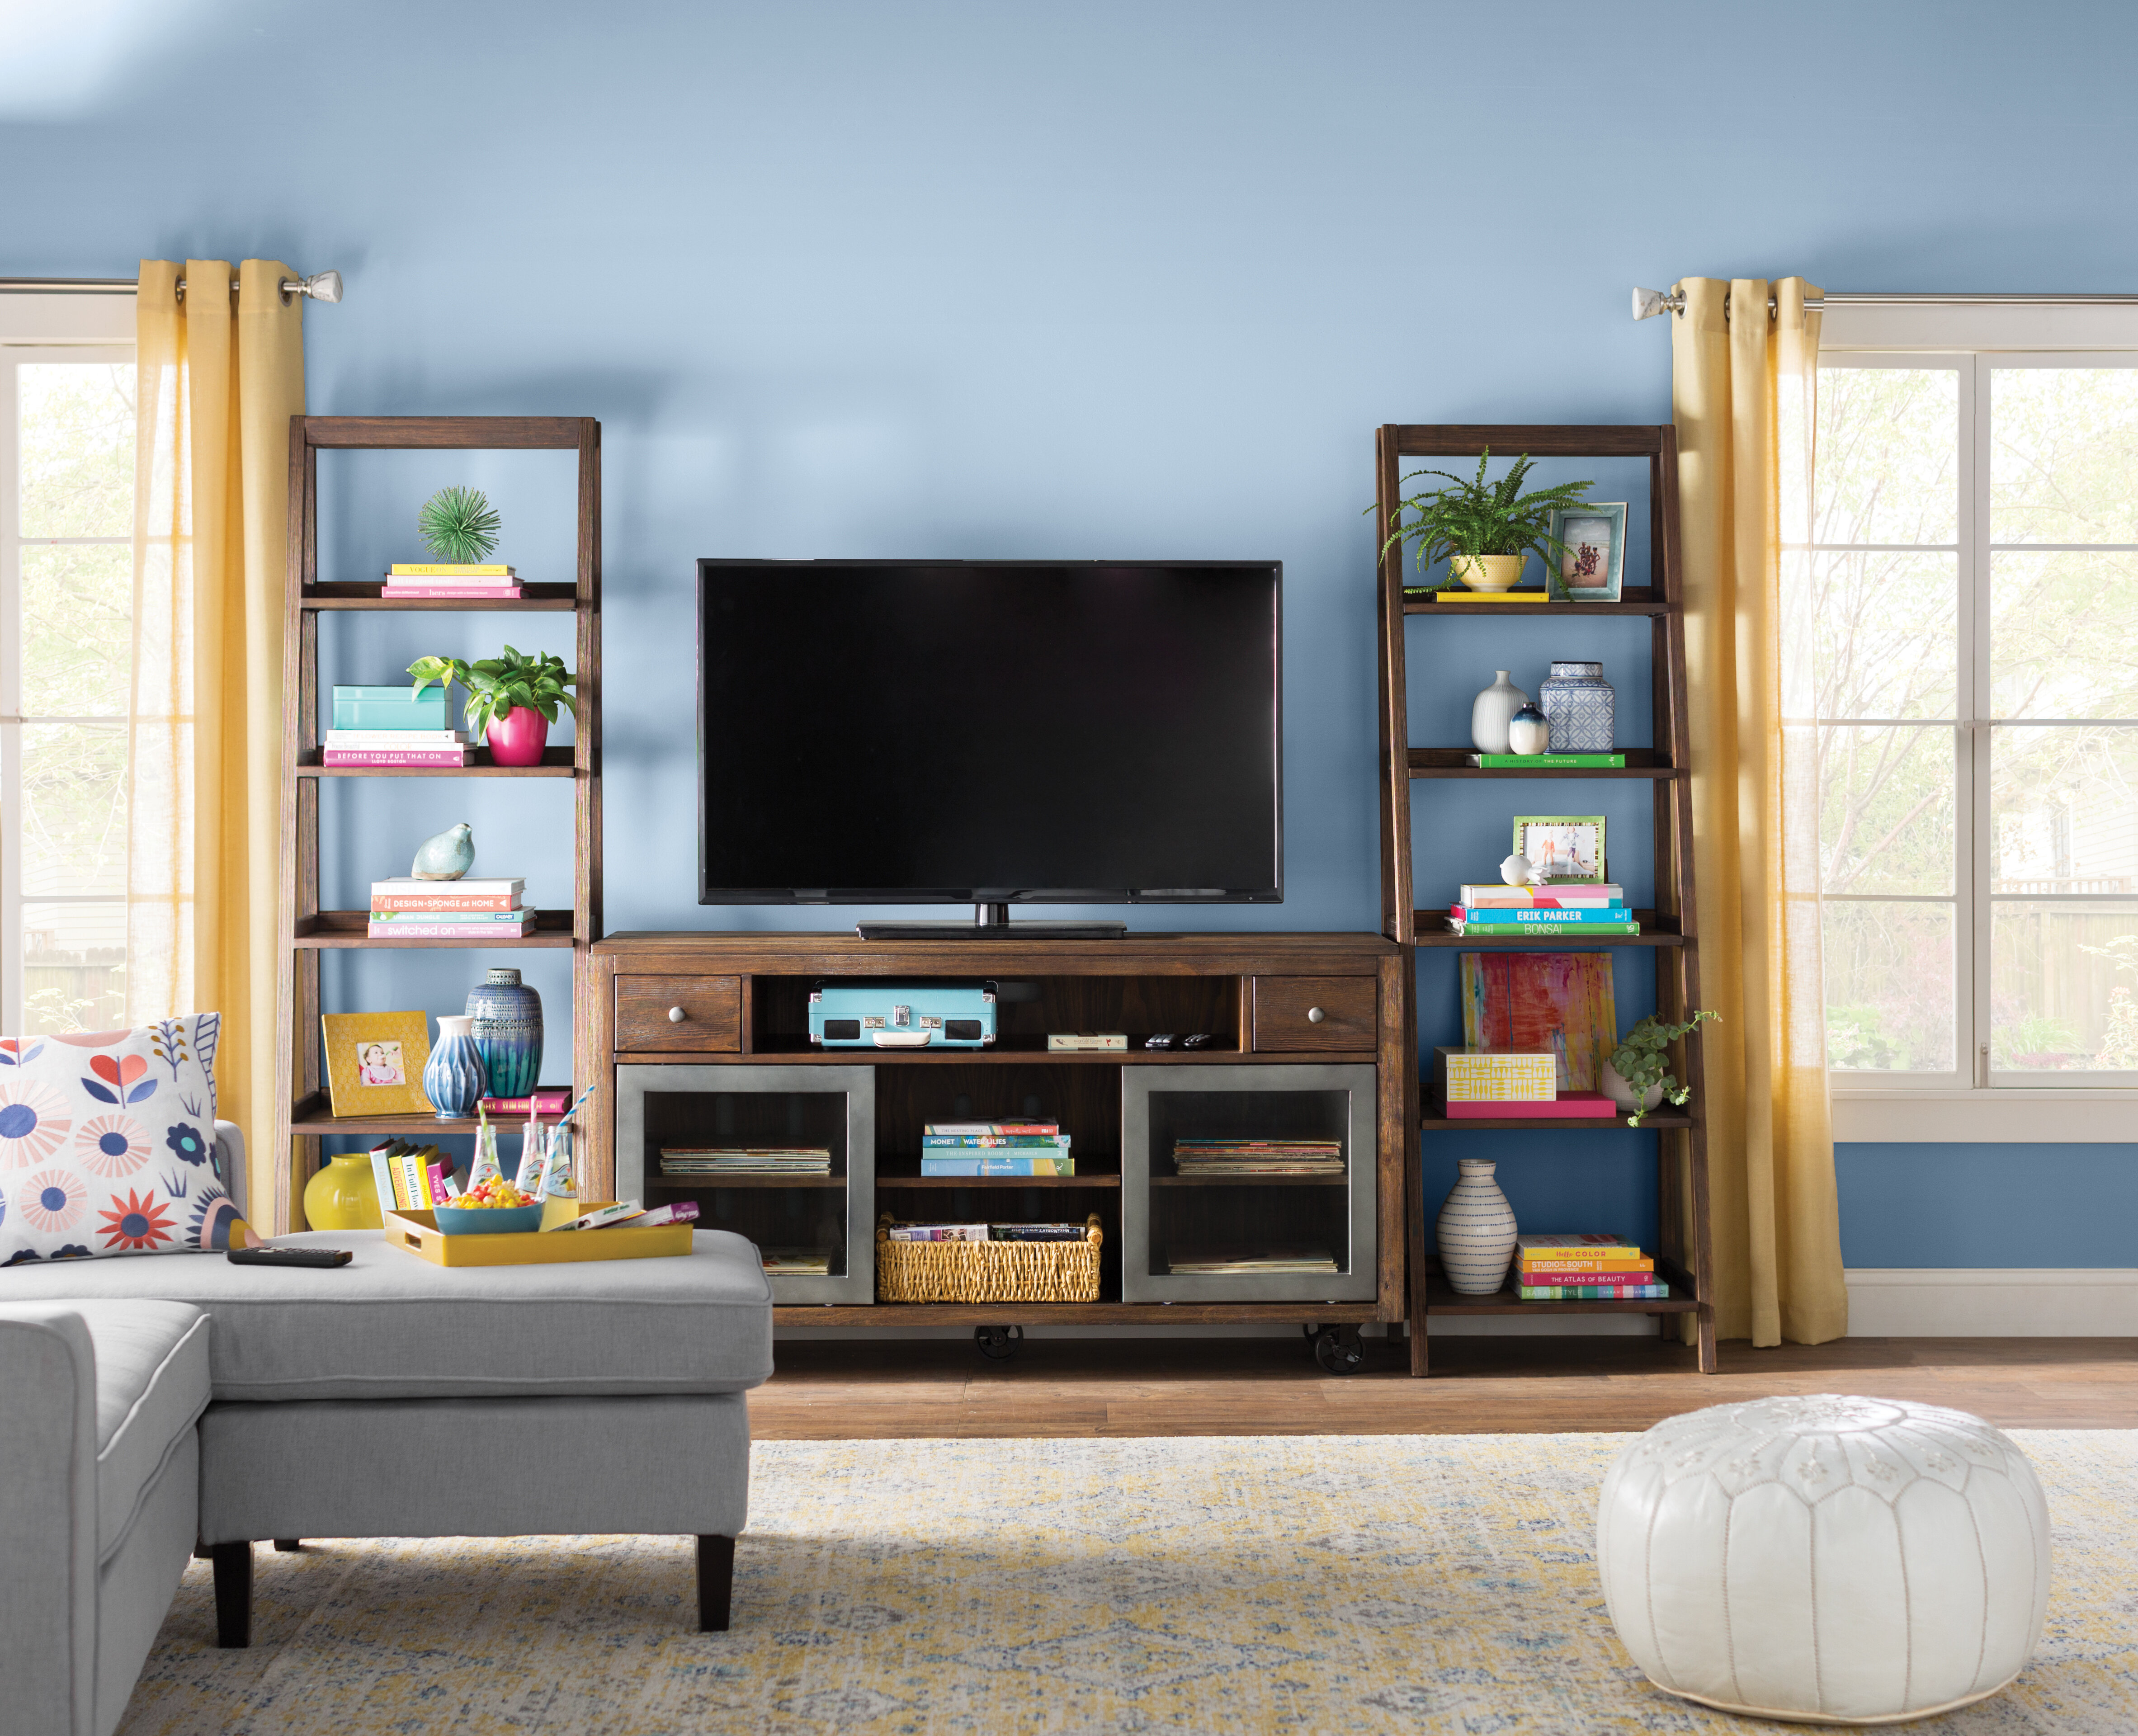 Surprising How To Find The Right Tv Stand Wayfair Gamerscity Chair Design For Home Gamerscityorg